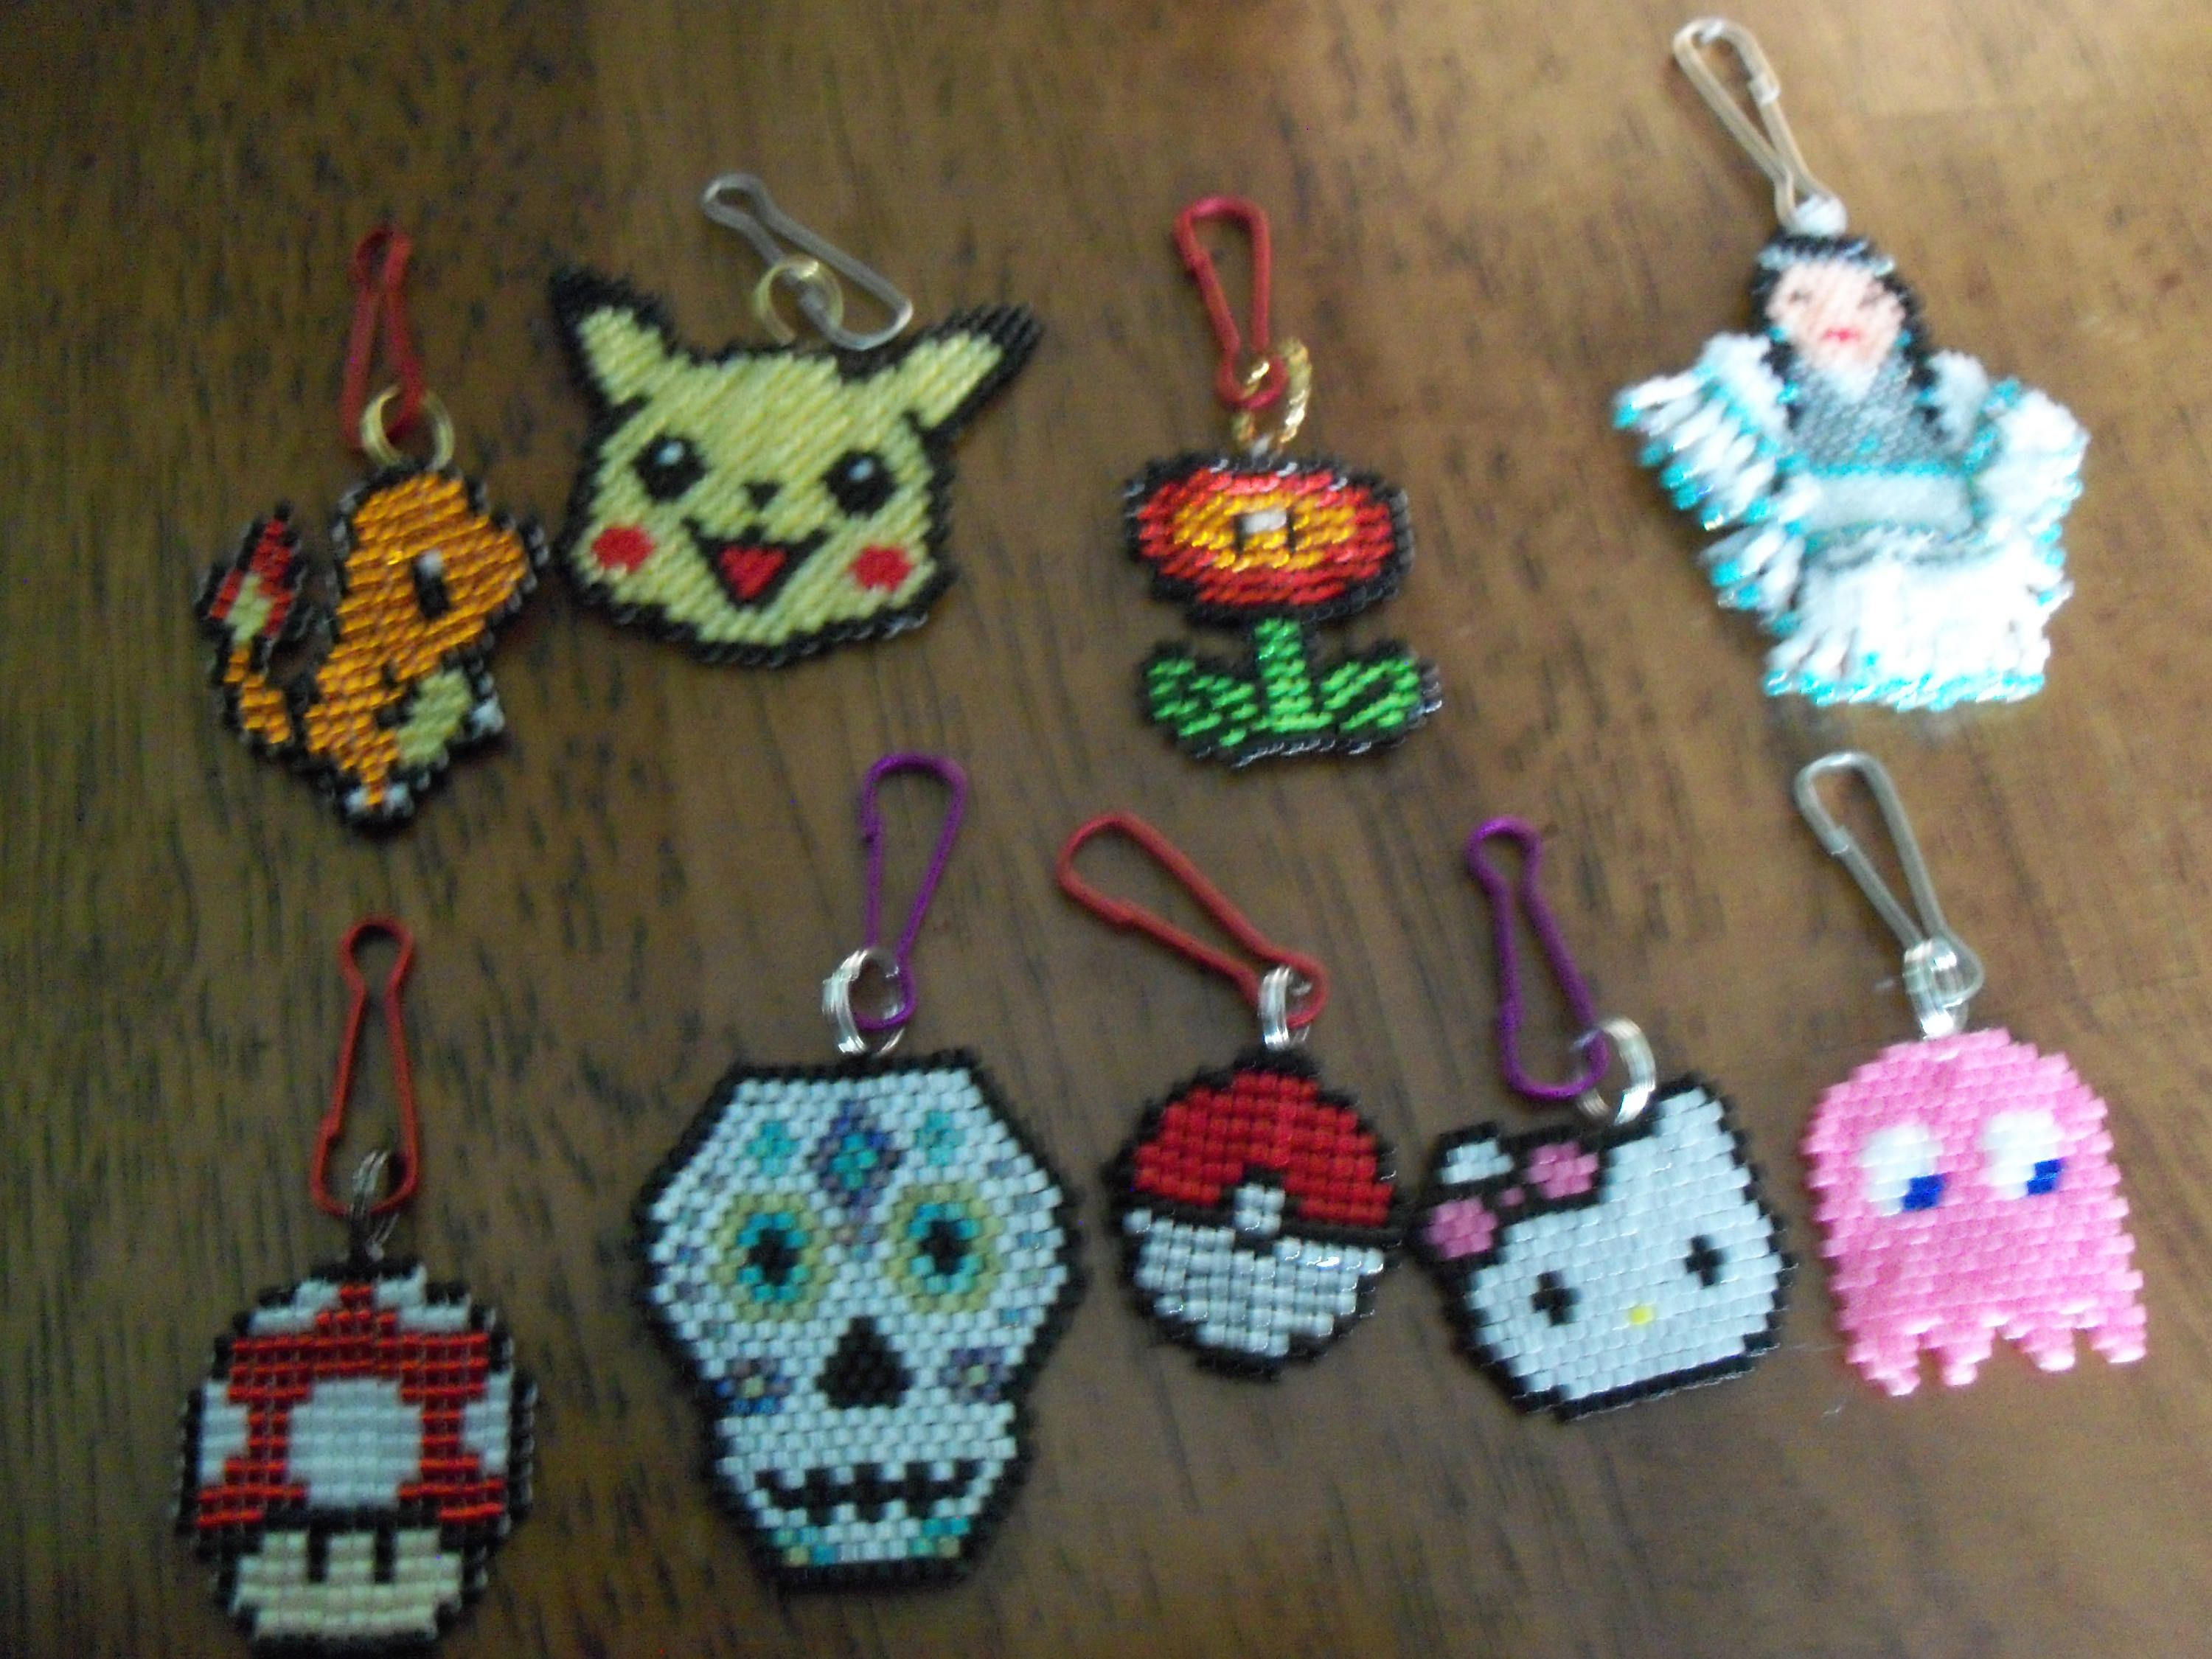 Retro gaming and brickstitch keychains/pendants by StrungOnLove on Etsy